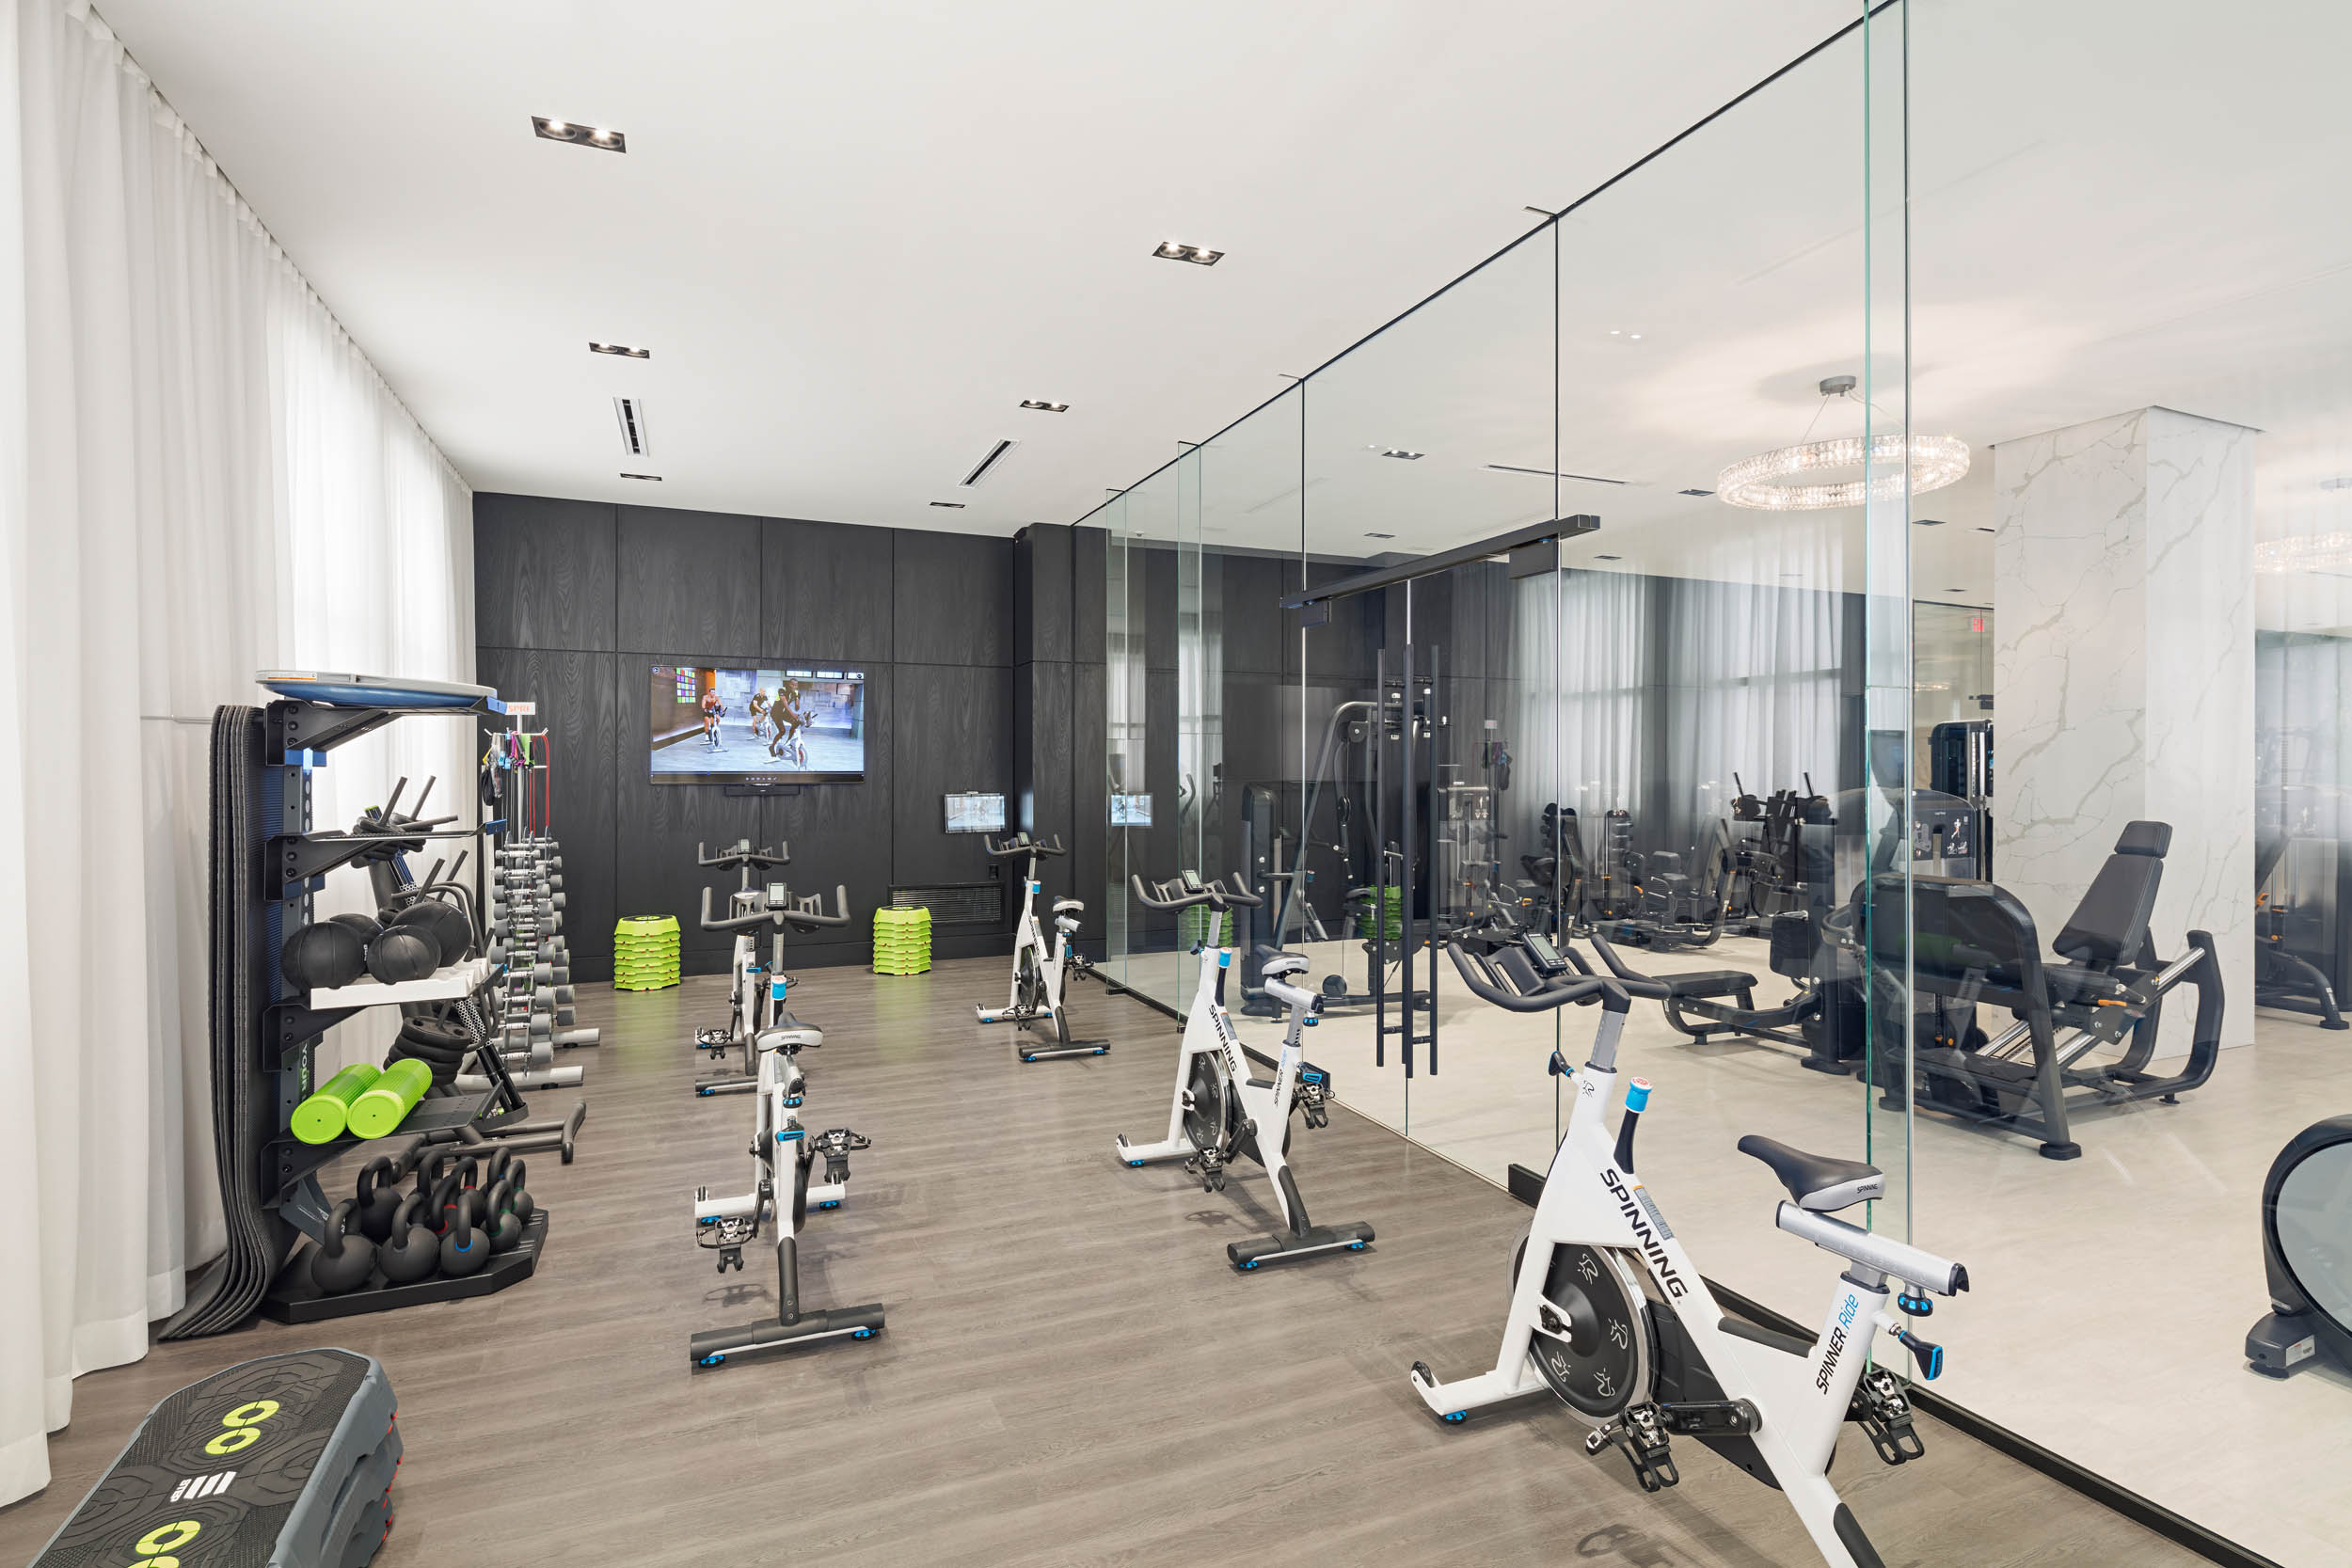 Fitness Center - Group Fitness Room